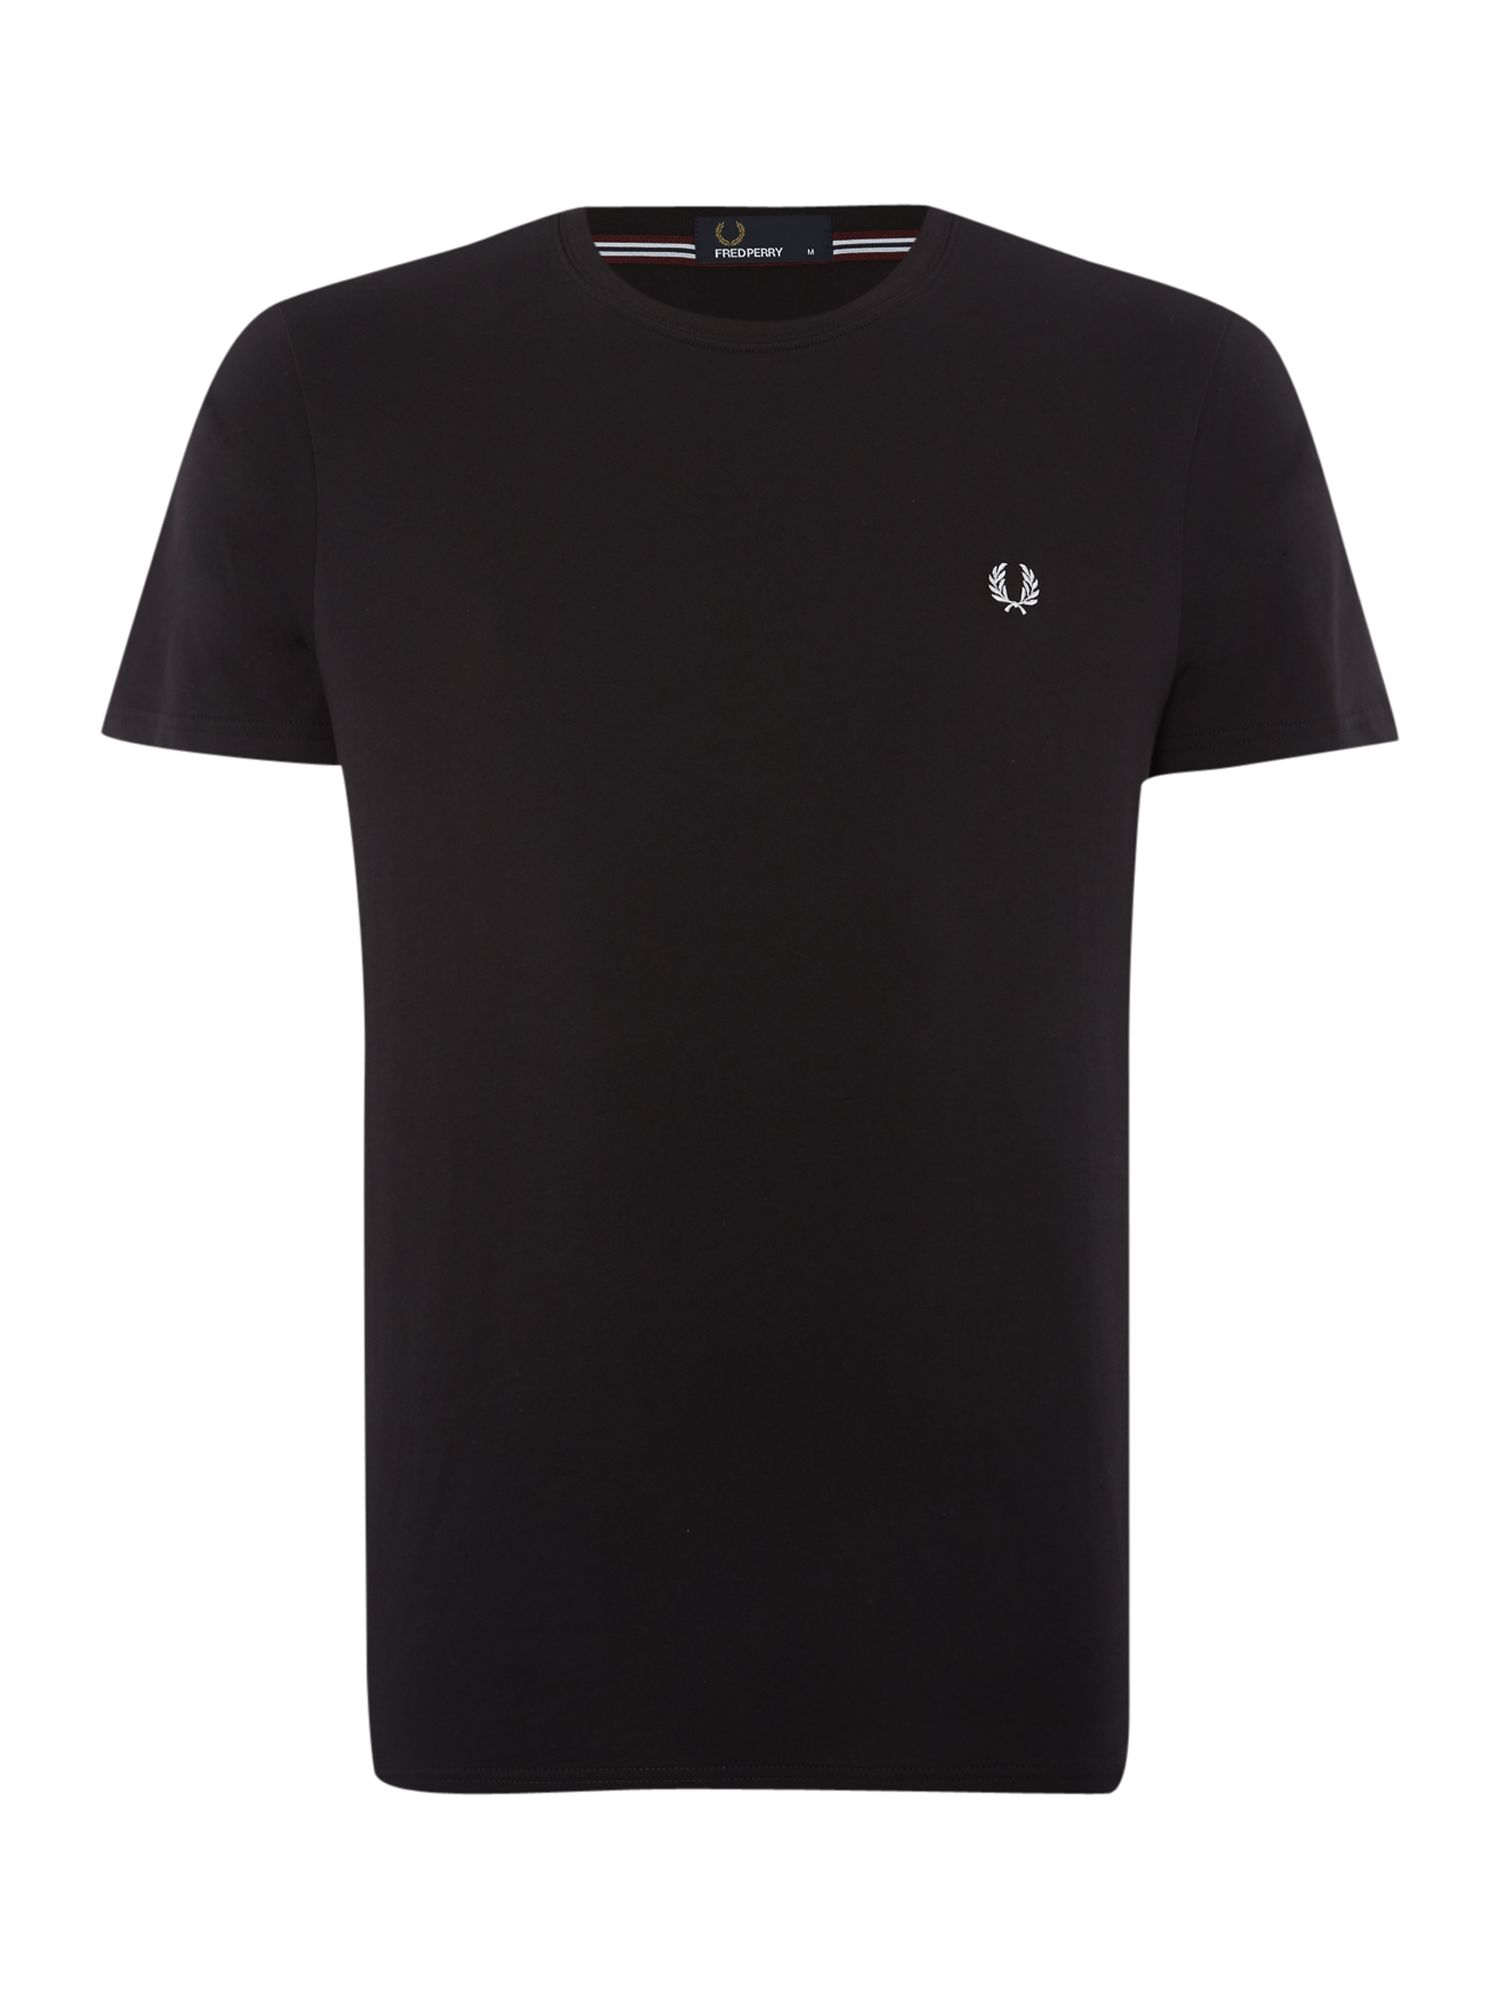 Men's Fred Perry Short-Sleeved T-Shirt, Black